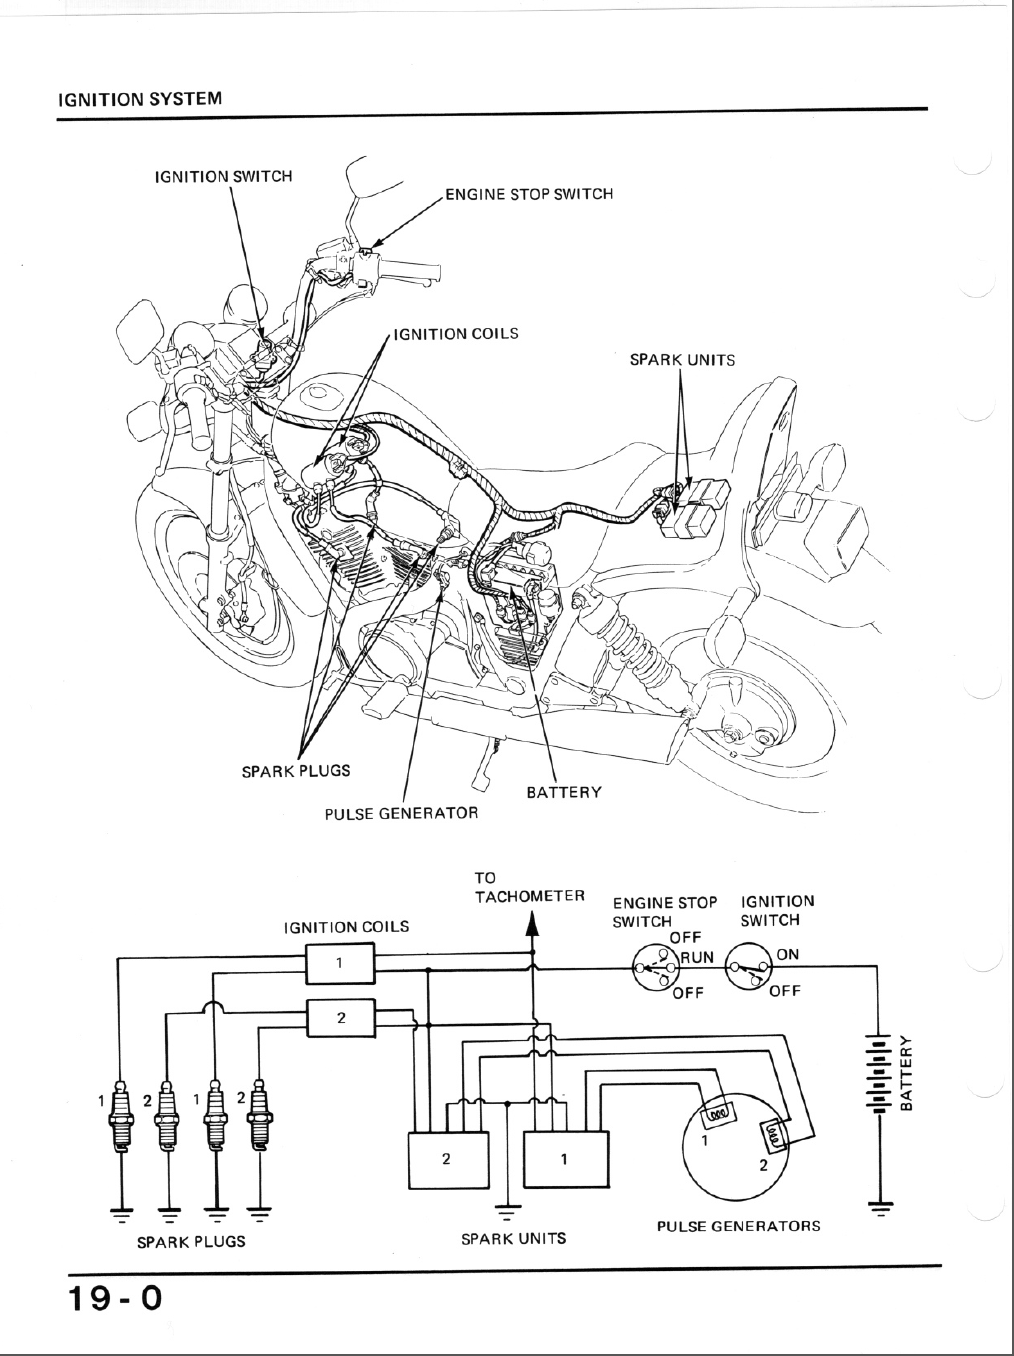 Mesmerizing 2004 honda cbr600rr wiring diagram contemporary best